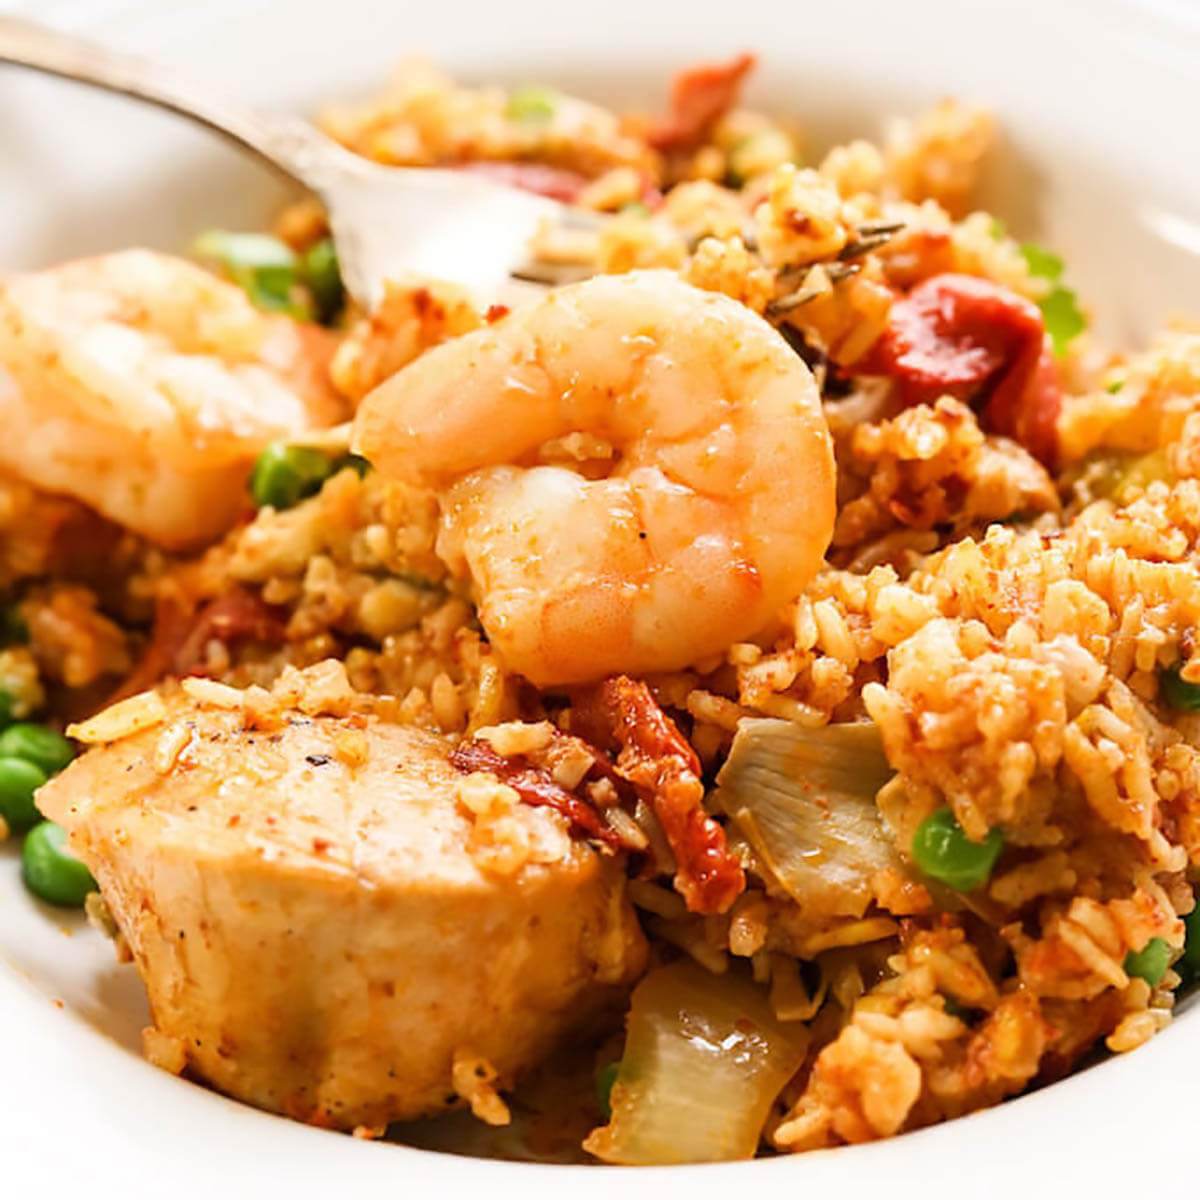 Paella in white bowl with shrimp, pork and chicken.